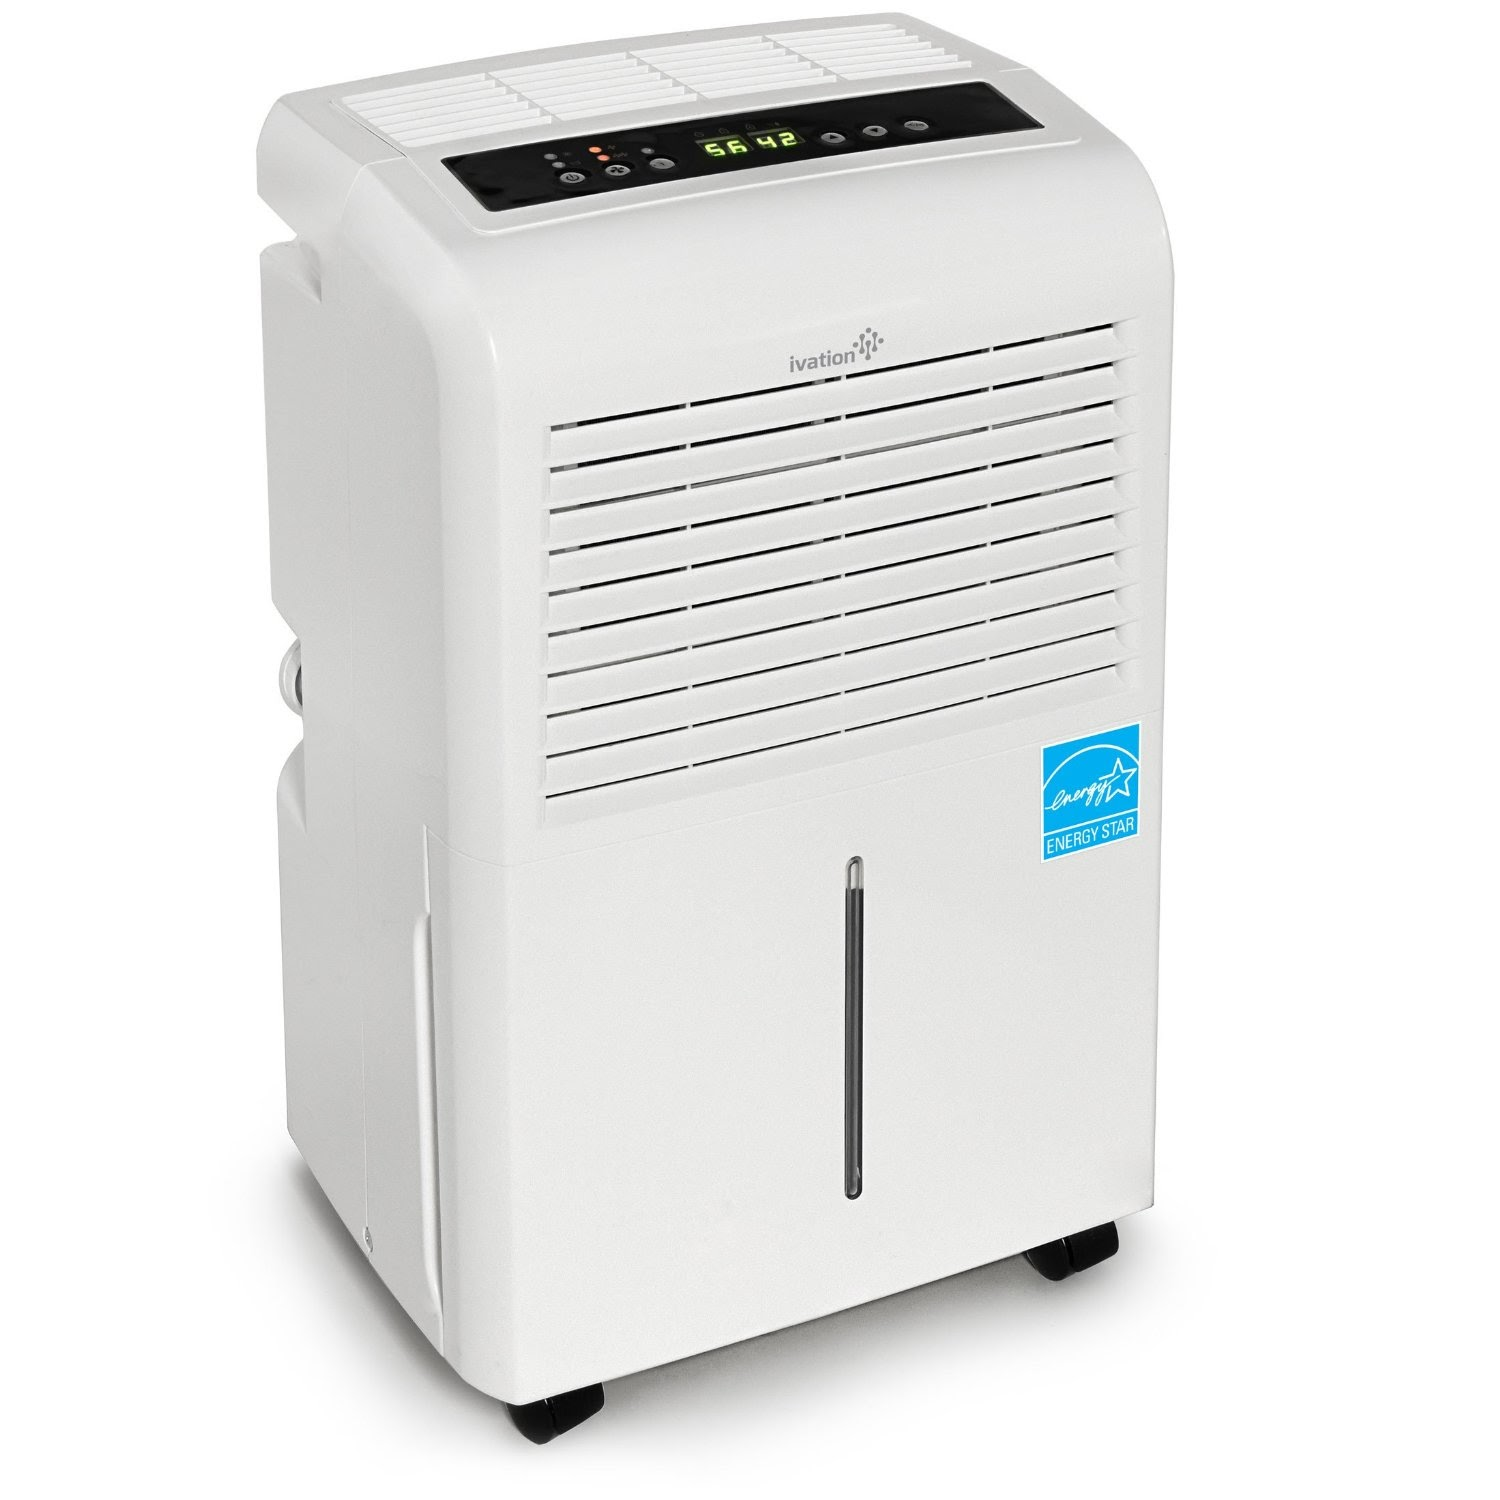 Ivation IVADH30PW 30 Pint Energy Star Dehumidifier. >>